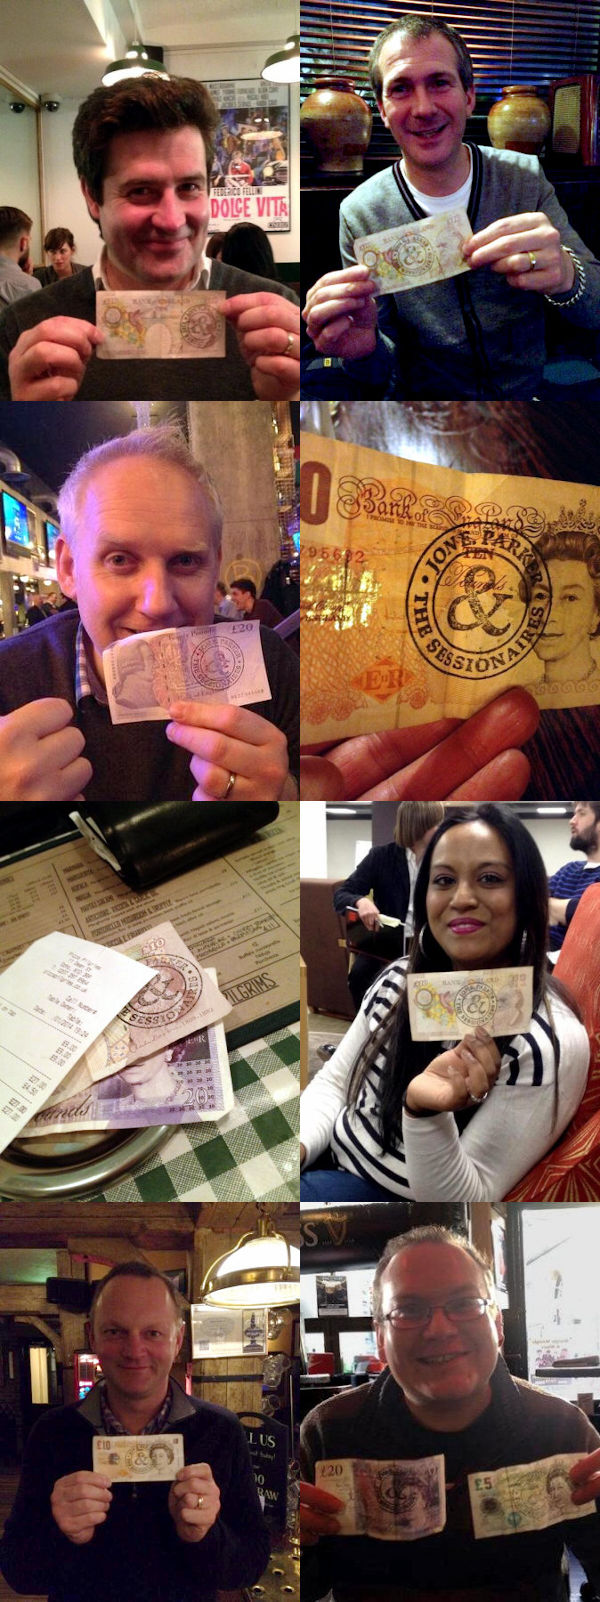 Assorted ne're-do-wells holding notes marked with the Jon E. Parker and the Sessions stamped logo.